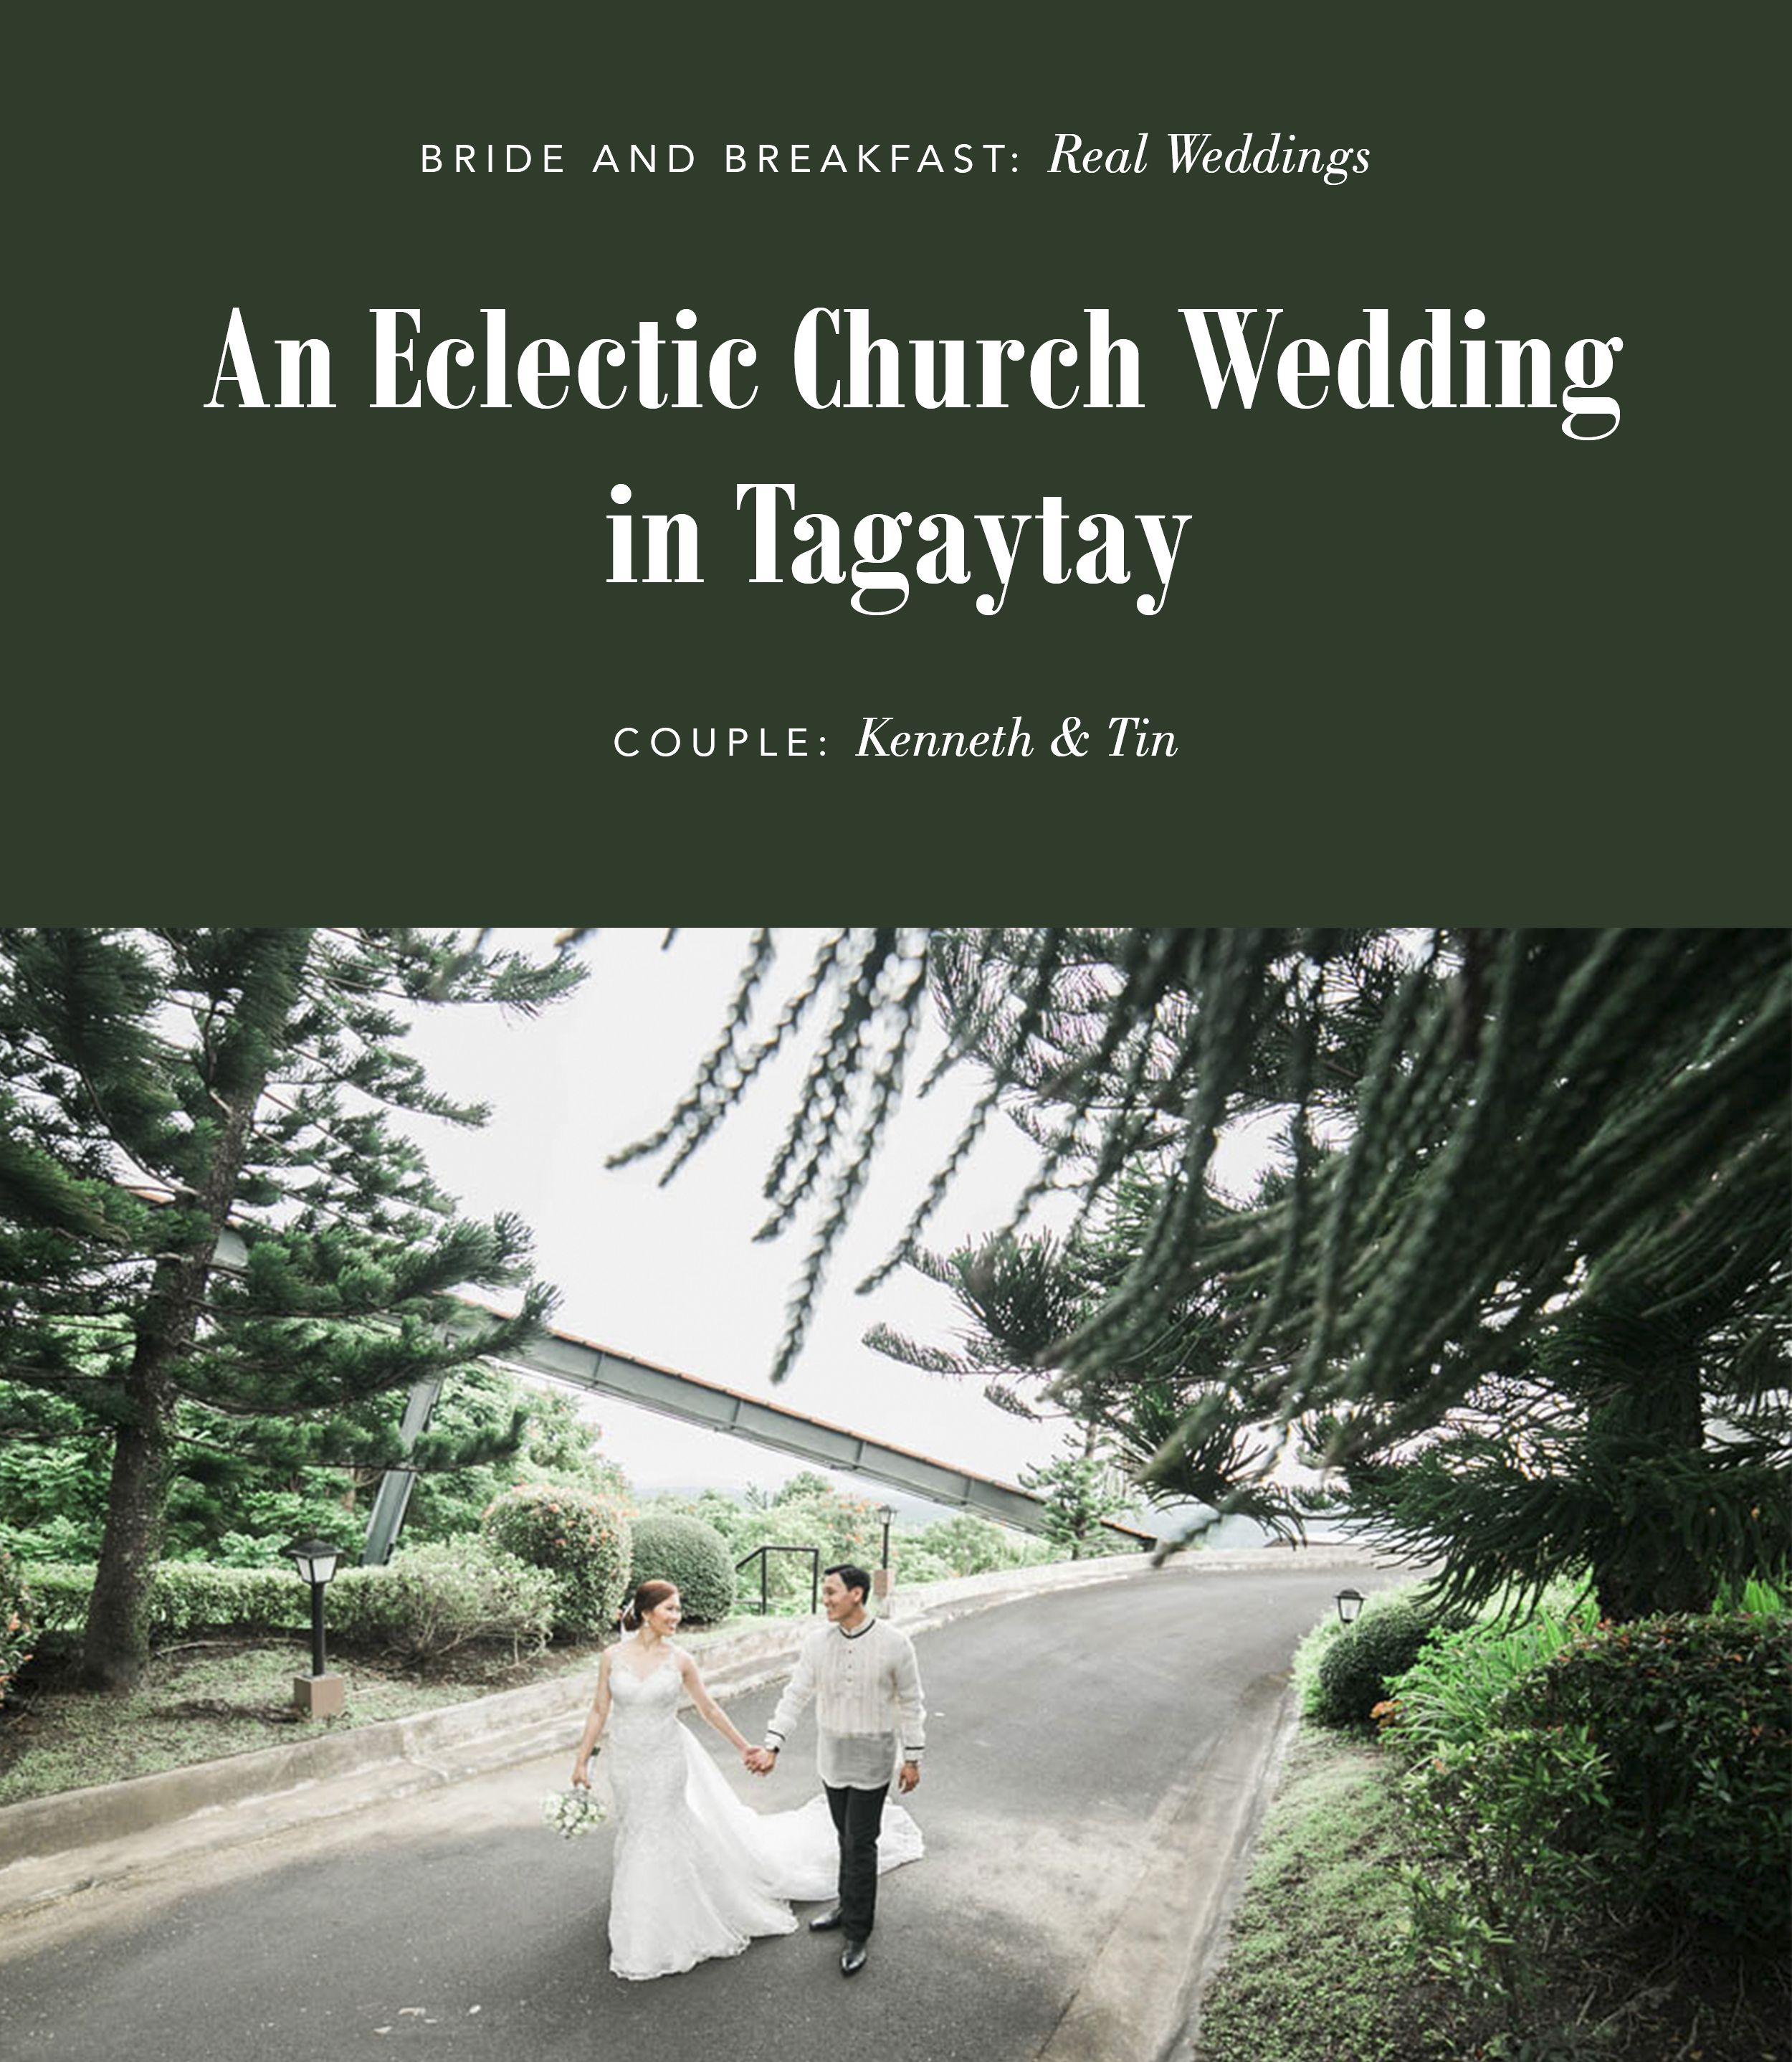 An eclectic church wedding in tagaytay tagaytay wedding and weddings